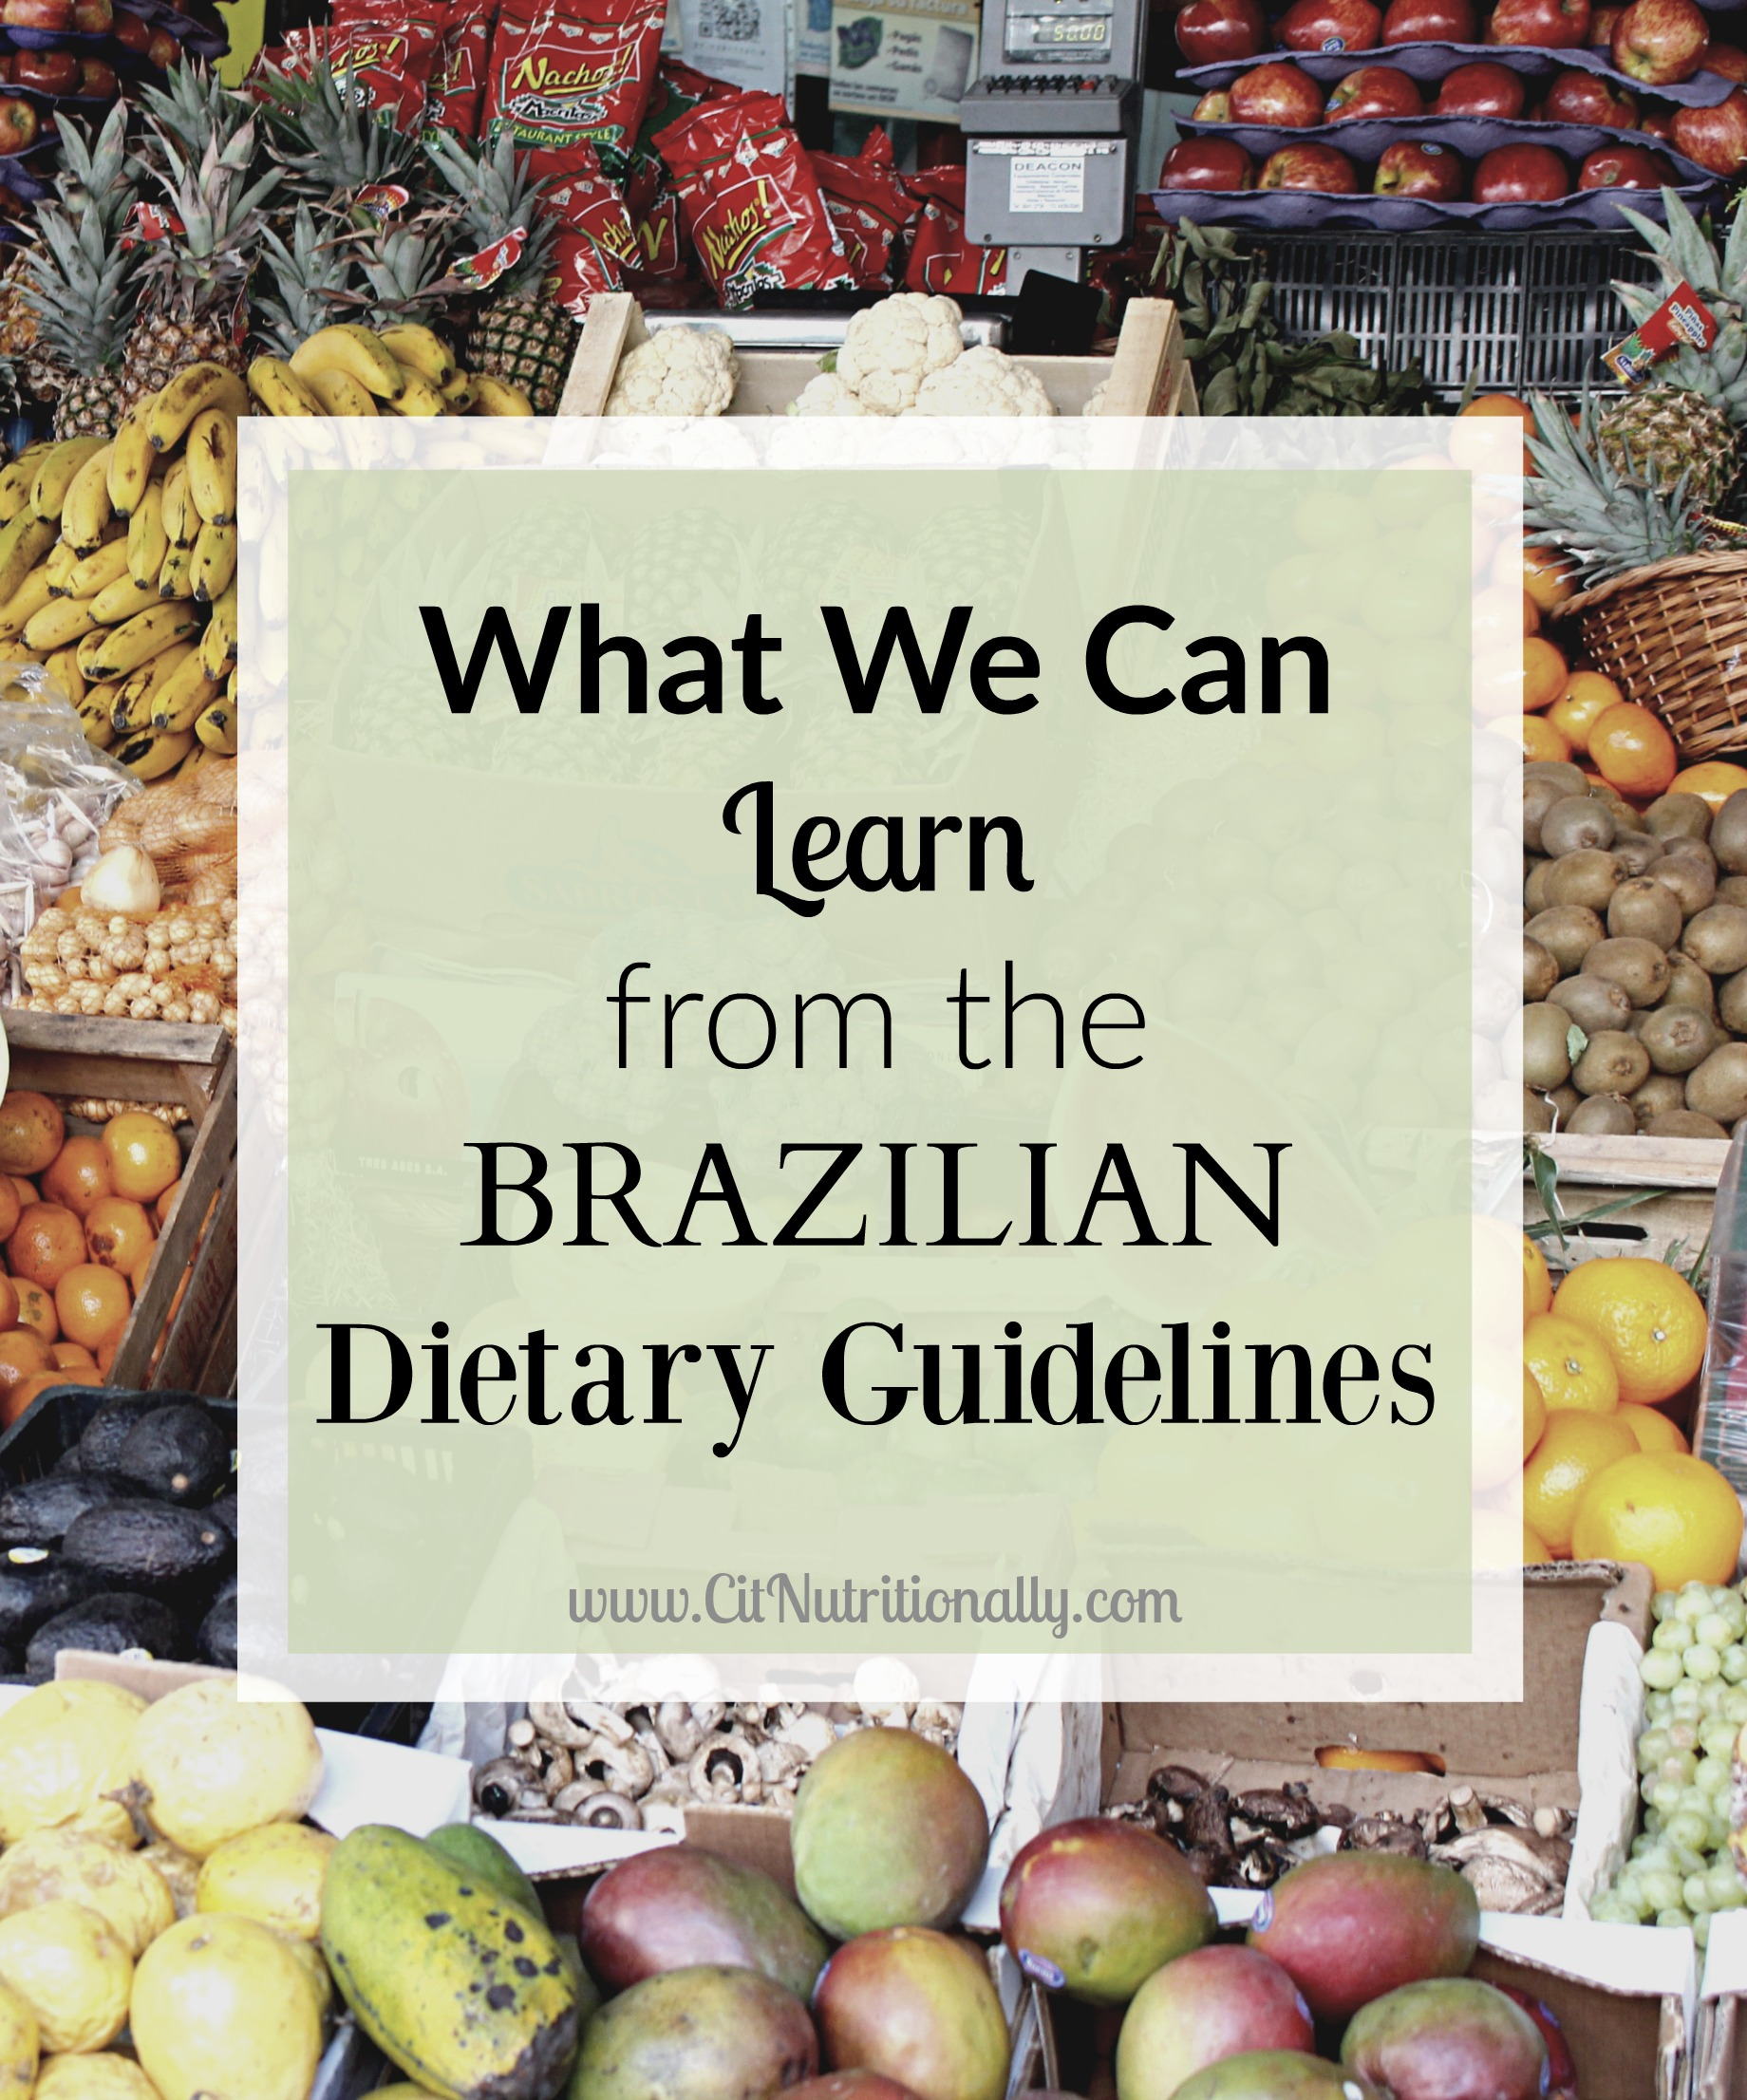 What We Can Learn From the Brazilian Dietary Guidelines | C it Nutritionally #healthy #health #nutrition